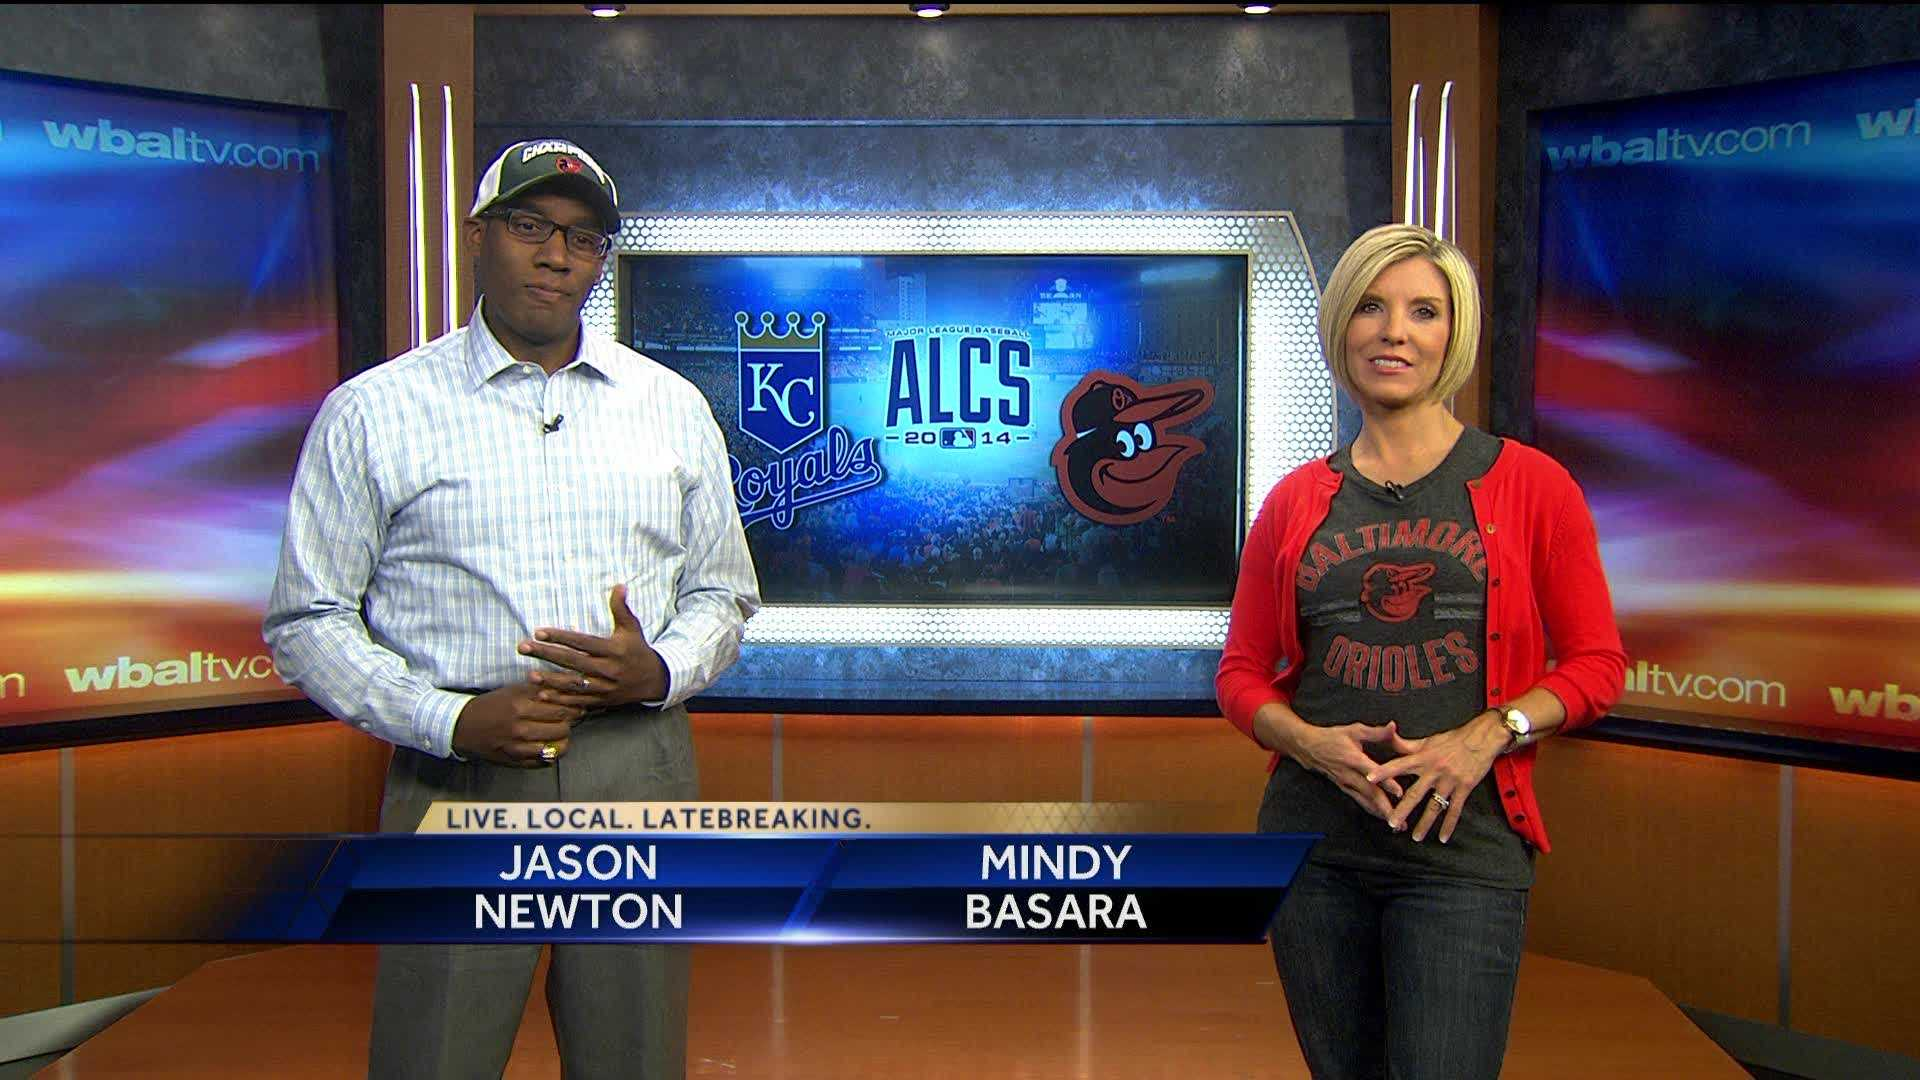 Mindy Basara and Jason Newton make a bet with KMBC news anchors Chris and Stephanie as they talk up the Orioles and how the team will take down the Royals.